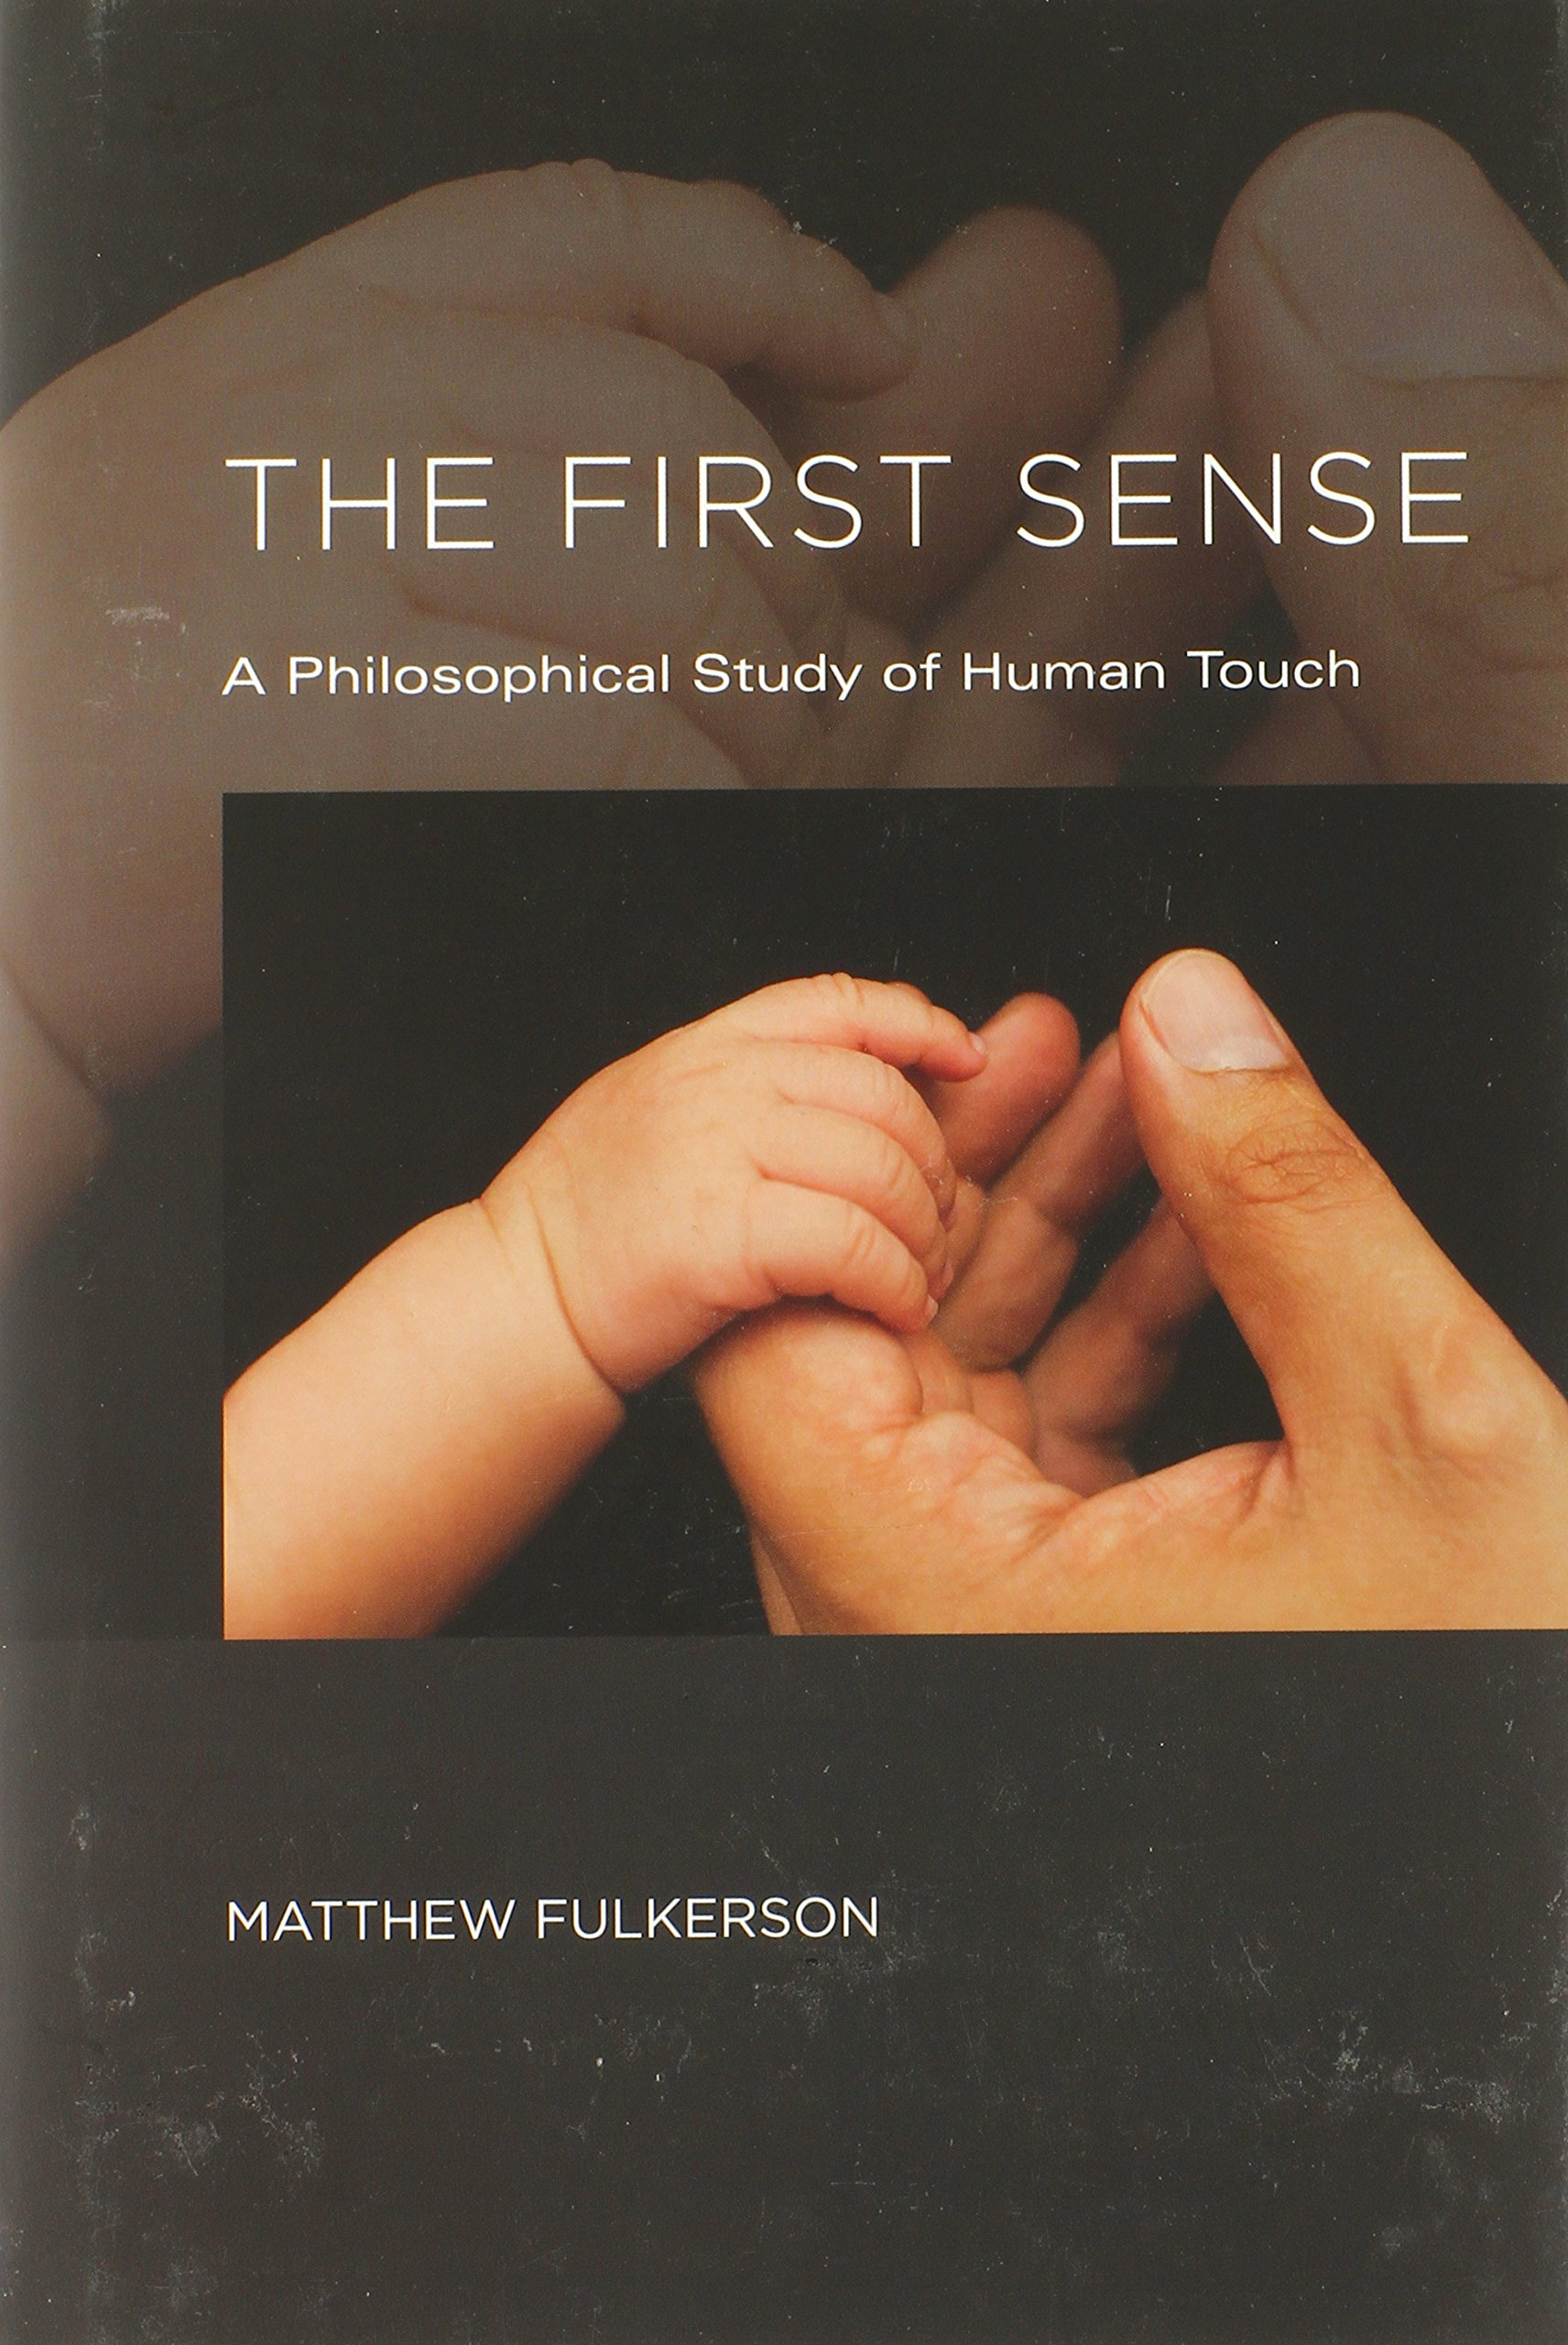 The First Sense: A Philosophical Study Of Human Touch (mit Press): Matthew  Fulkerson: 9780262019965: Amazon: Books